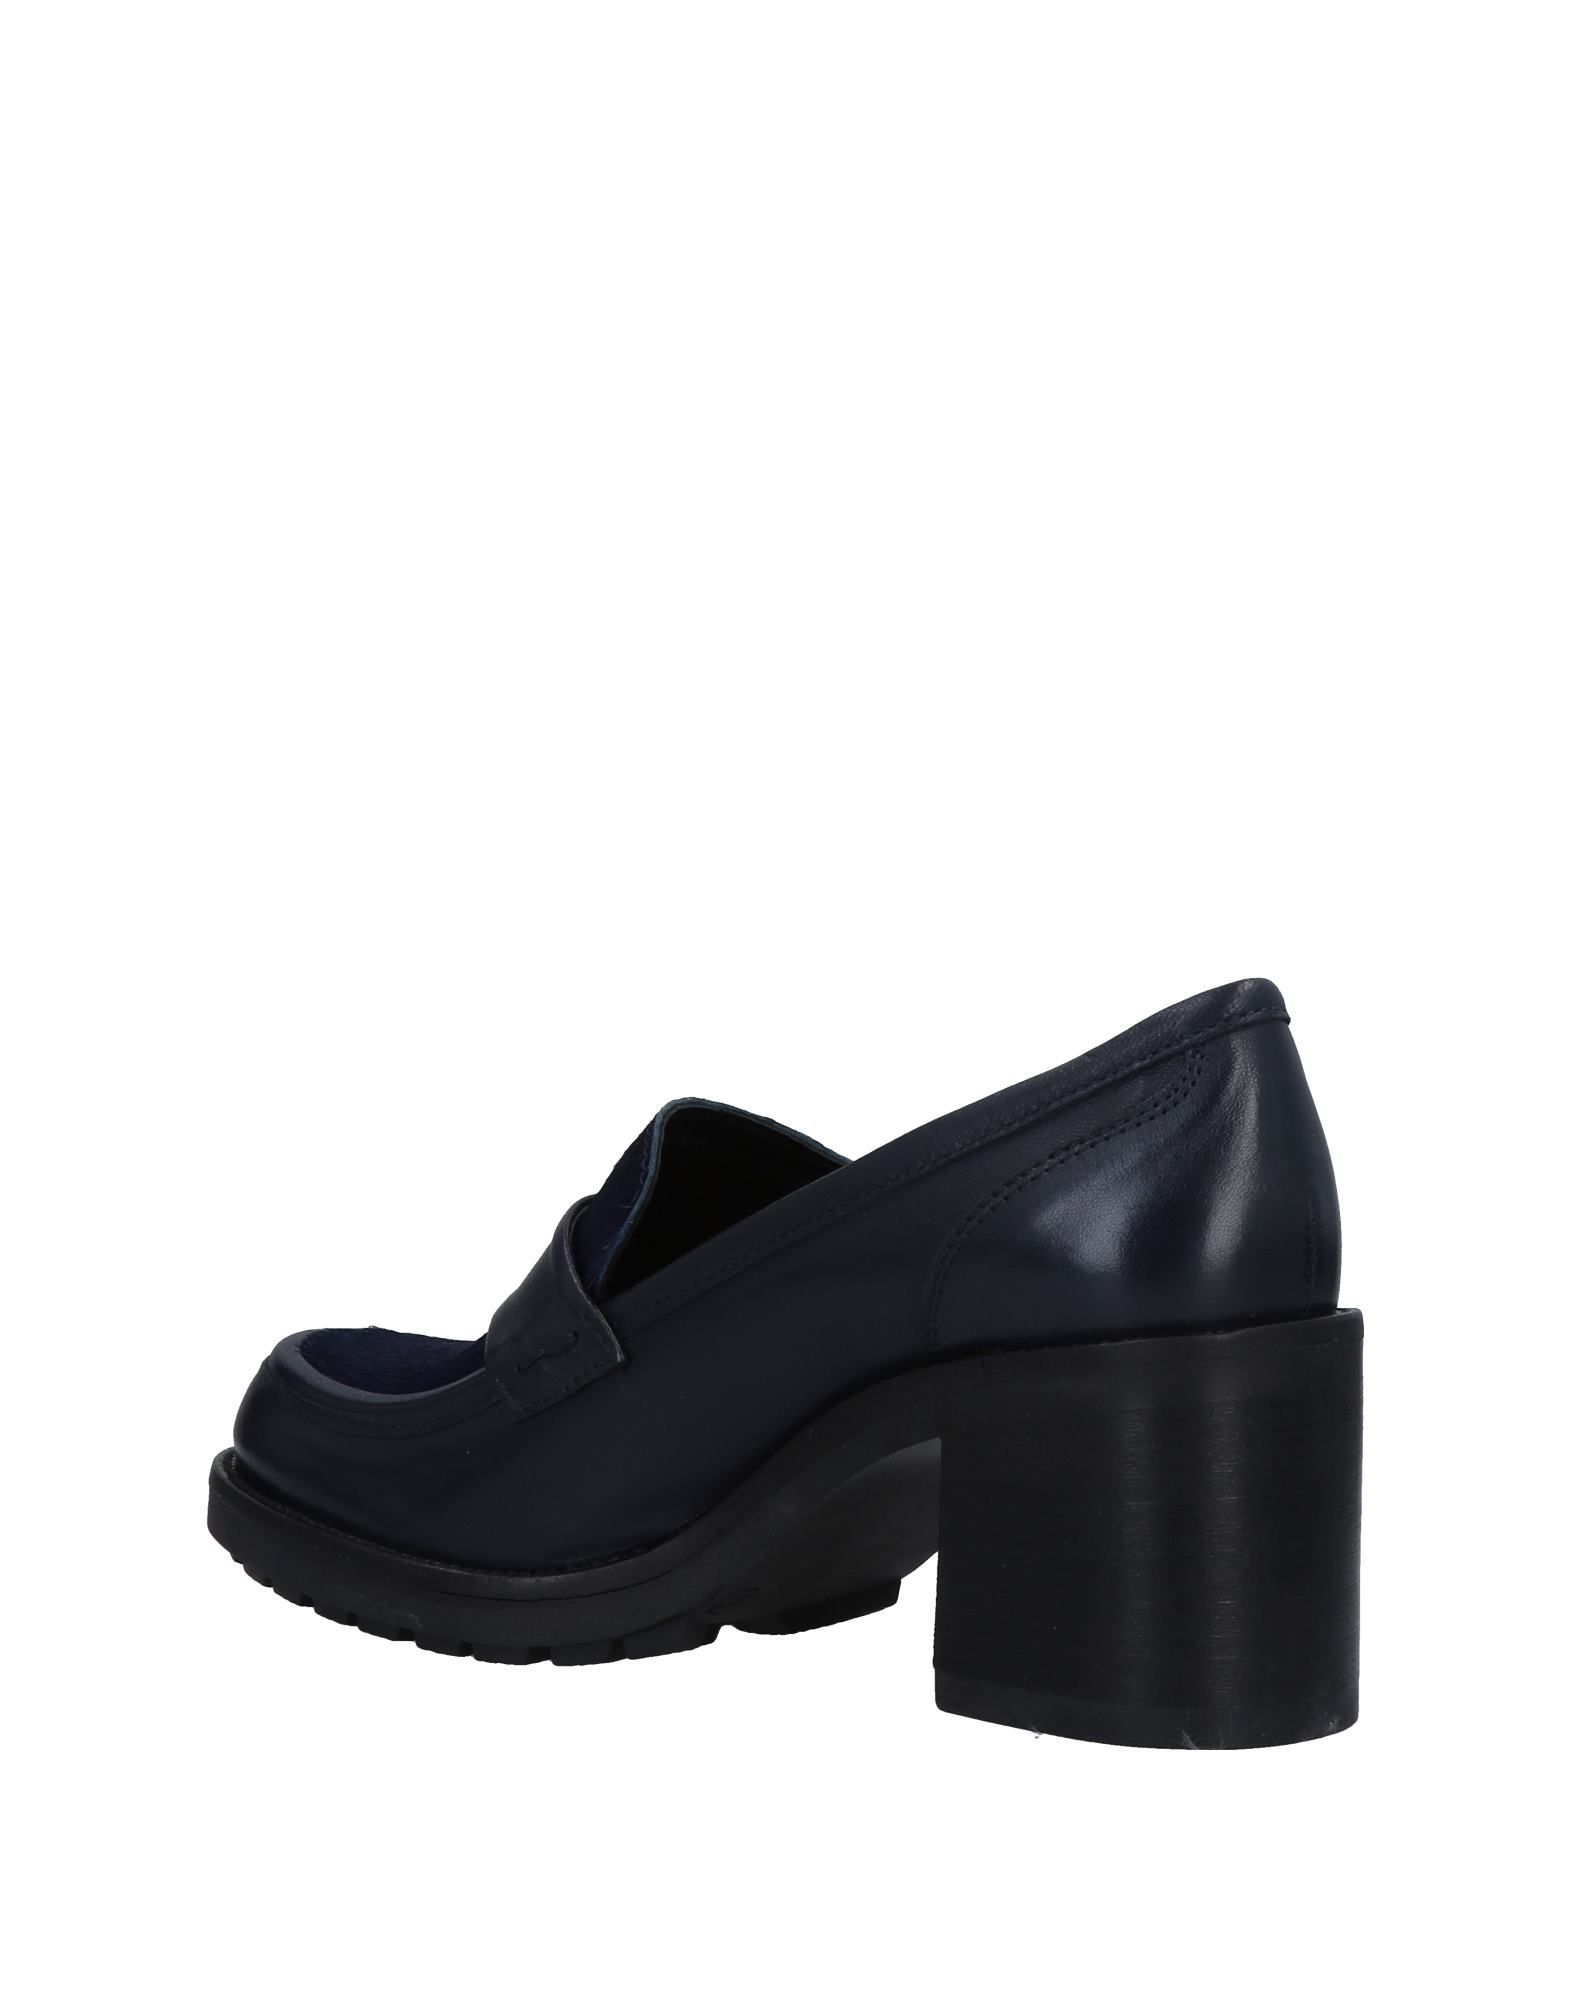 Mally Blue Leather Heeled Loafers